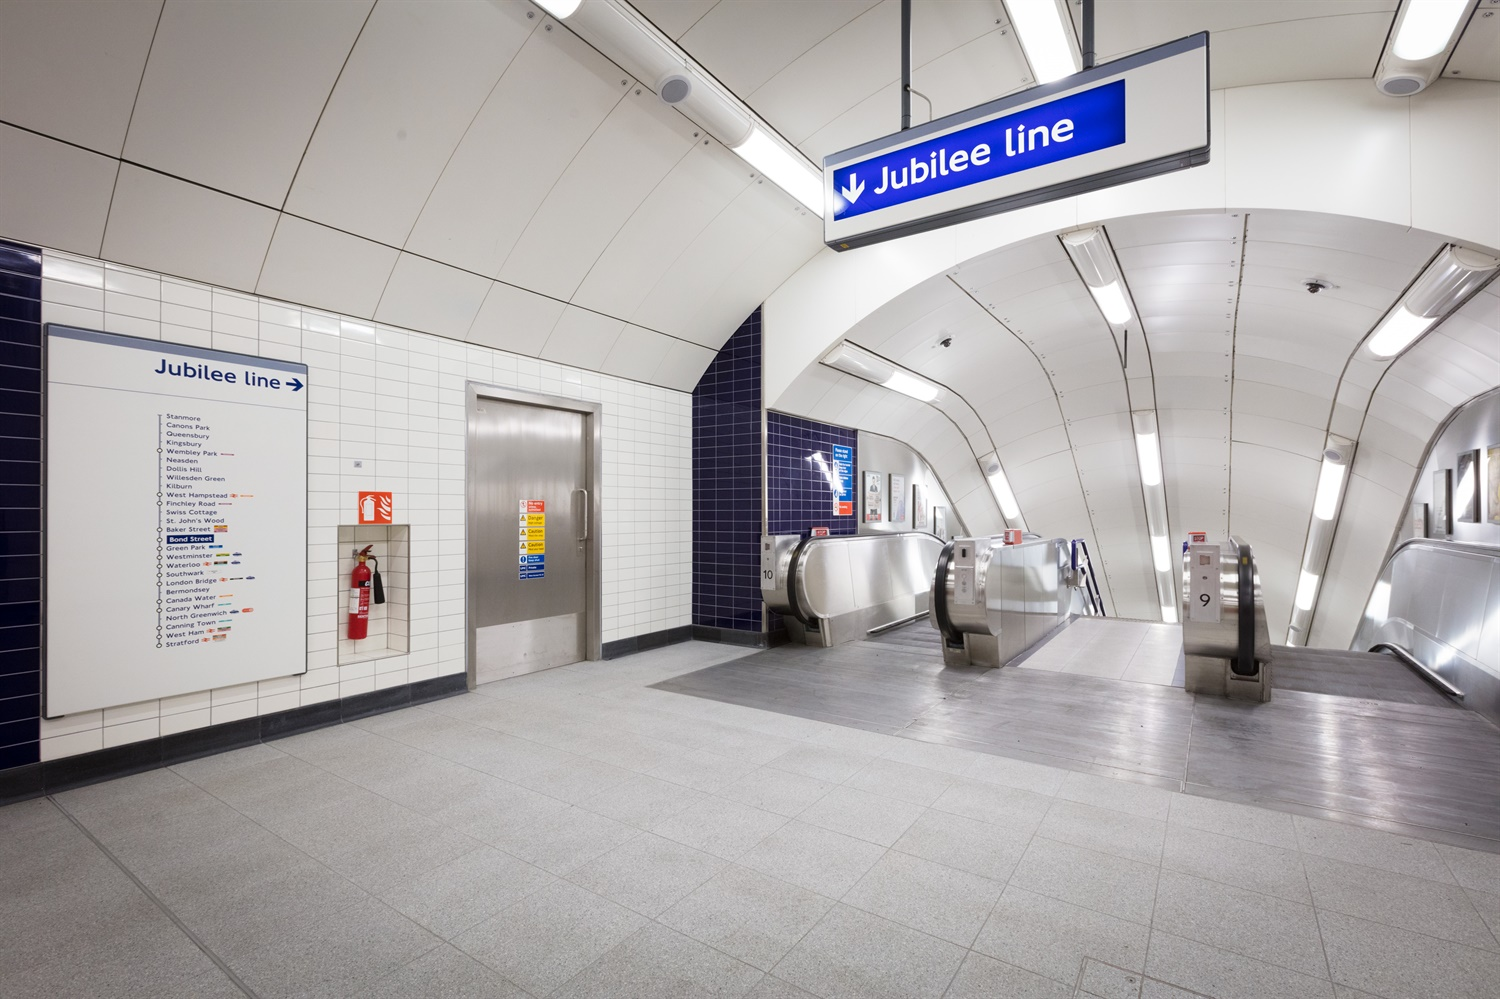 Bond Street £300m revamp unveiled ahead of Elizabeth Line link next year